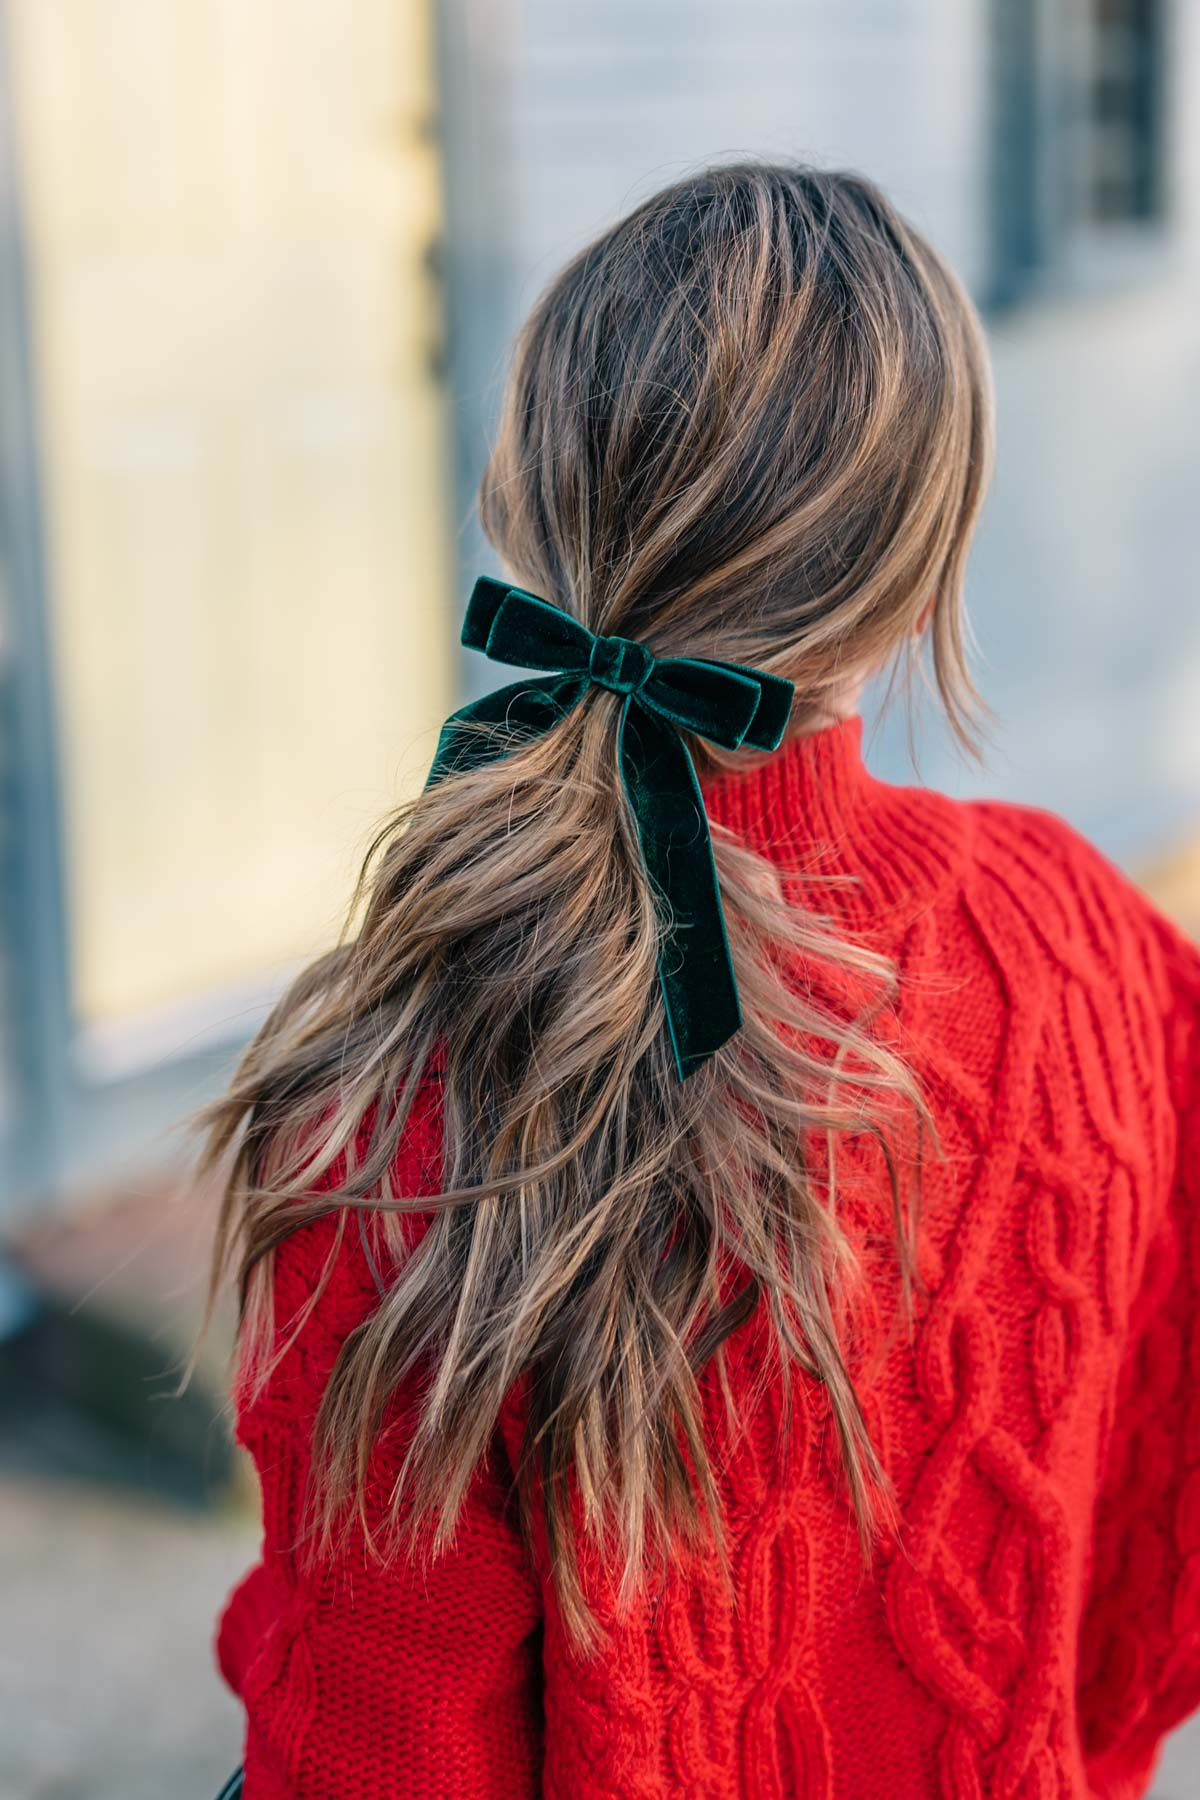 Jess Ann Kirby's balayage hair style for the holidays with a green velvet hair bow from J. Crew